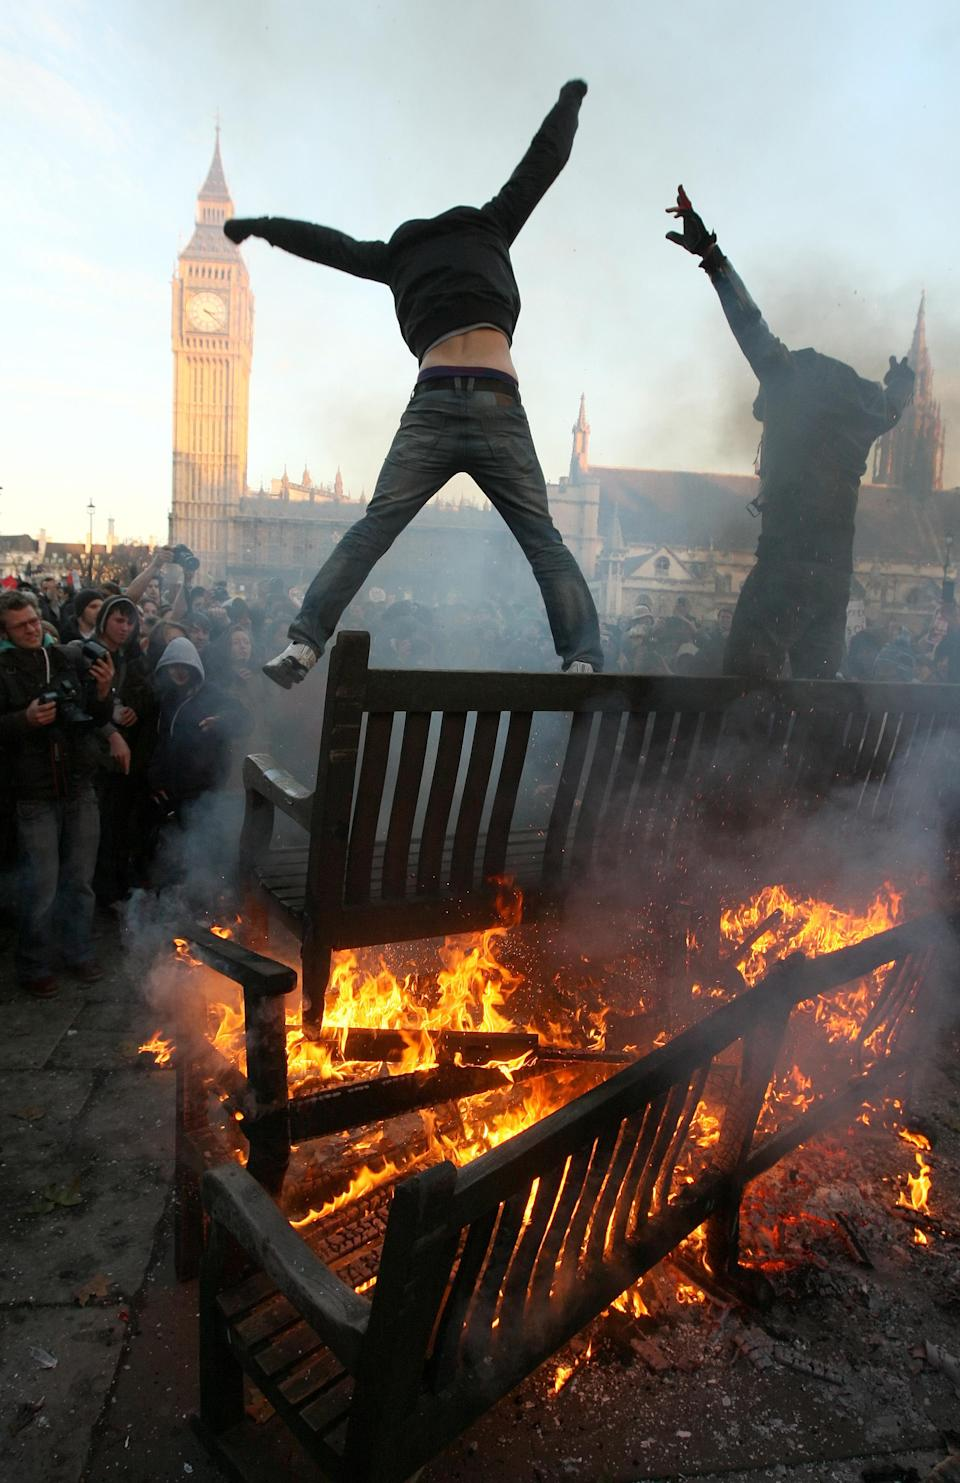 Two demonstrators jump from the top of a bonfire in Parliament Square, as students demonstrate in Westminster, London, against planned tuition fee increases Thursday Dec. 9, 2010. (AP Photo/Dominic Lipinski/PA)  UNITED KINGDOM OUT